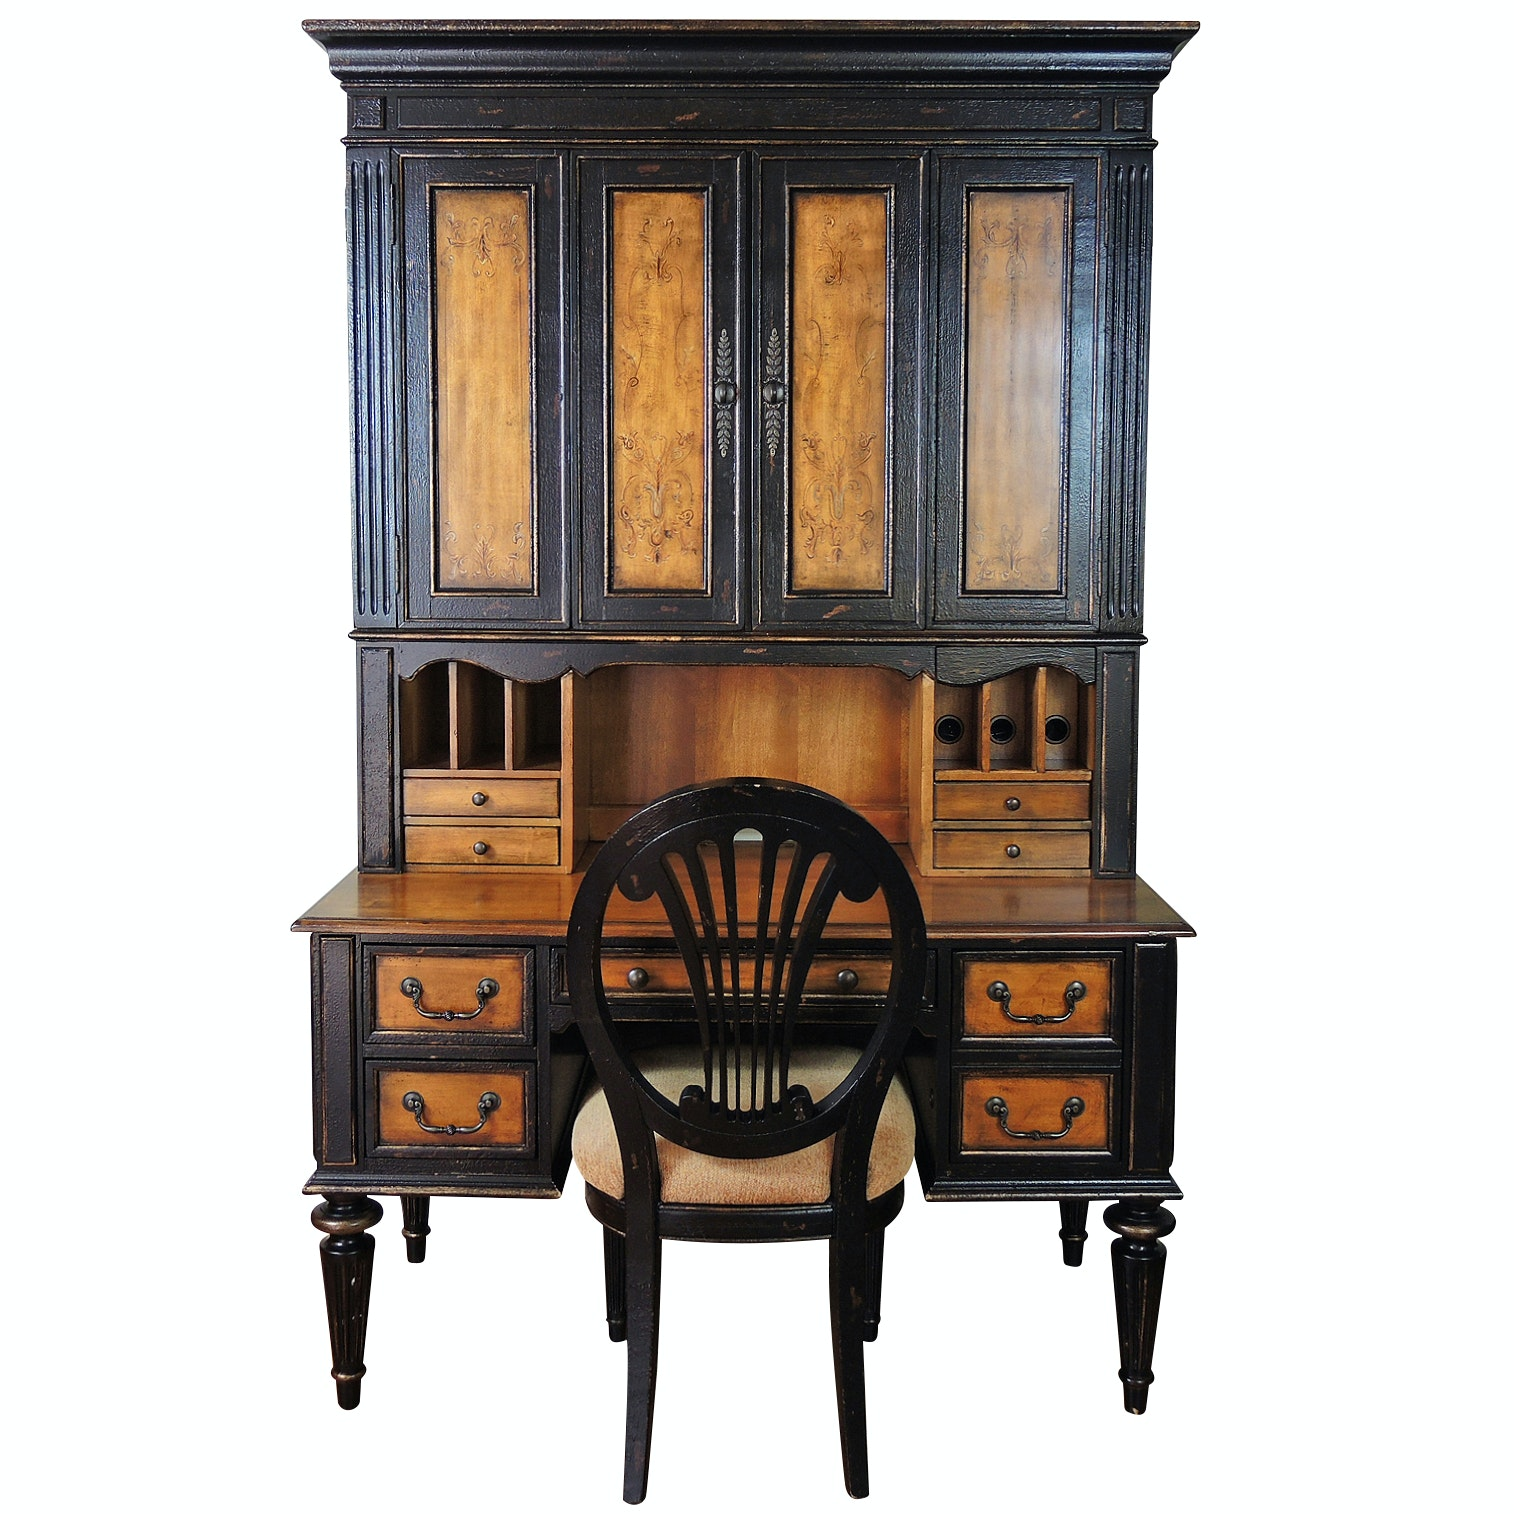 Hooker Furniture North Hampton Distressed Desk, Hutch and Chair, Contemporary